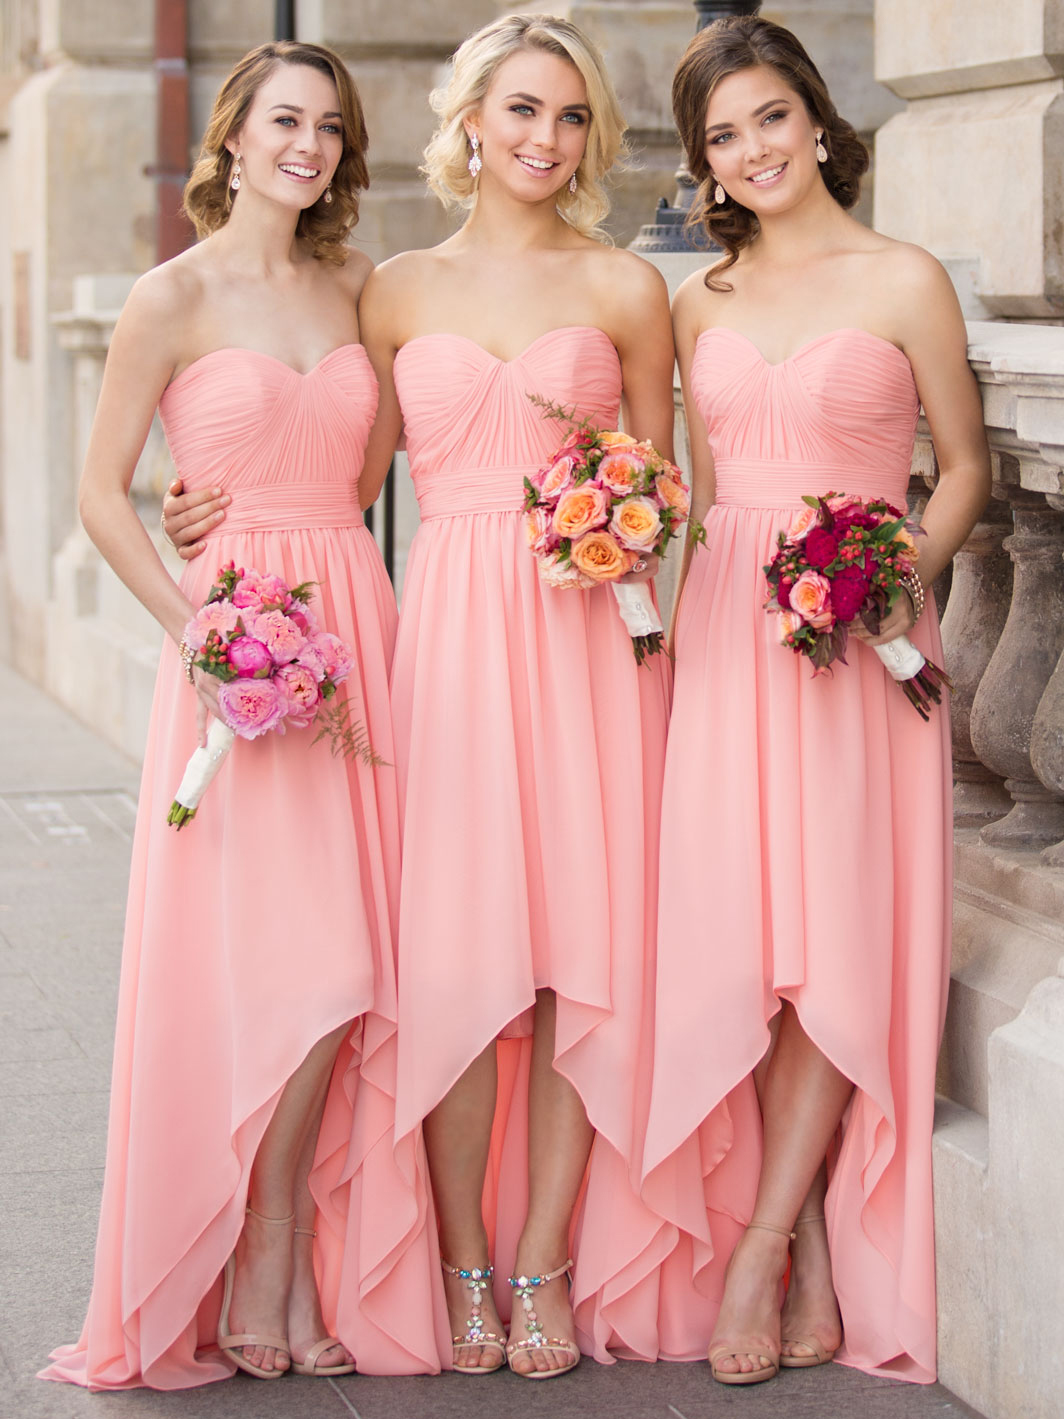 Sorella vita 8826 chiffon high low bridesmaid dressdimitradesigns chiffon high low sorella vita bridesmaid dress 8826 ombrellifo Images